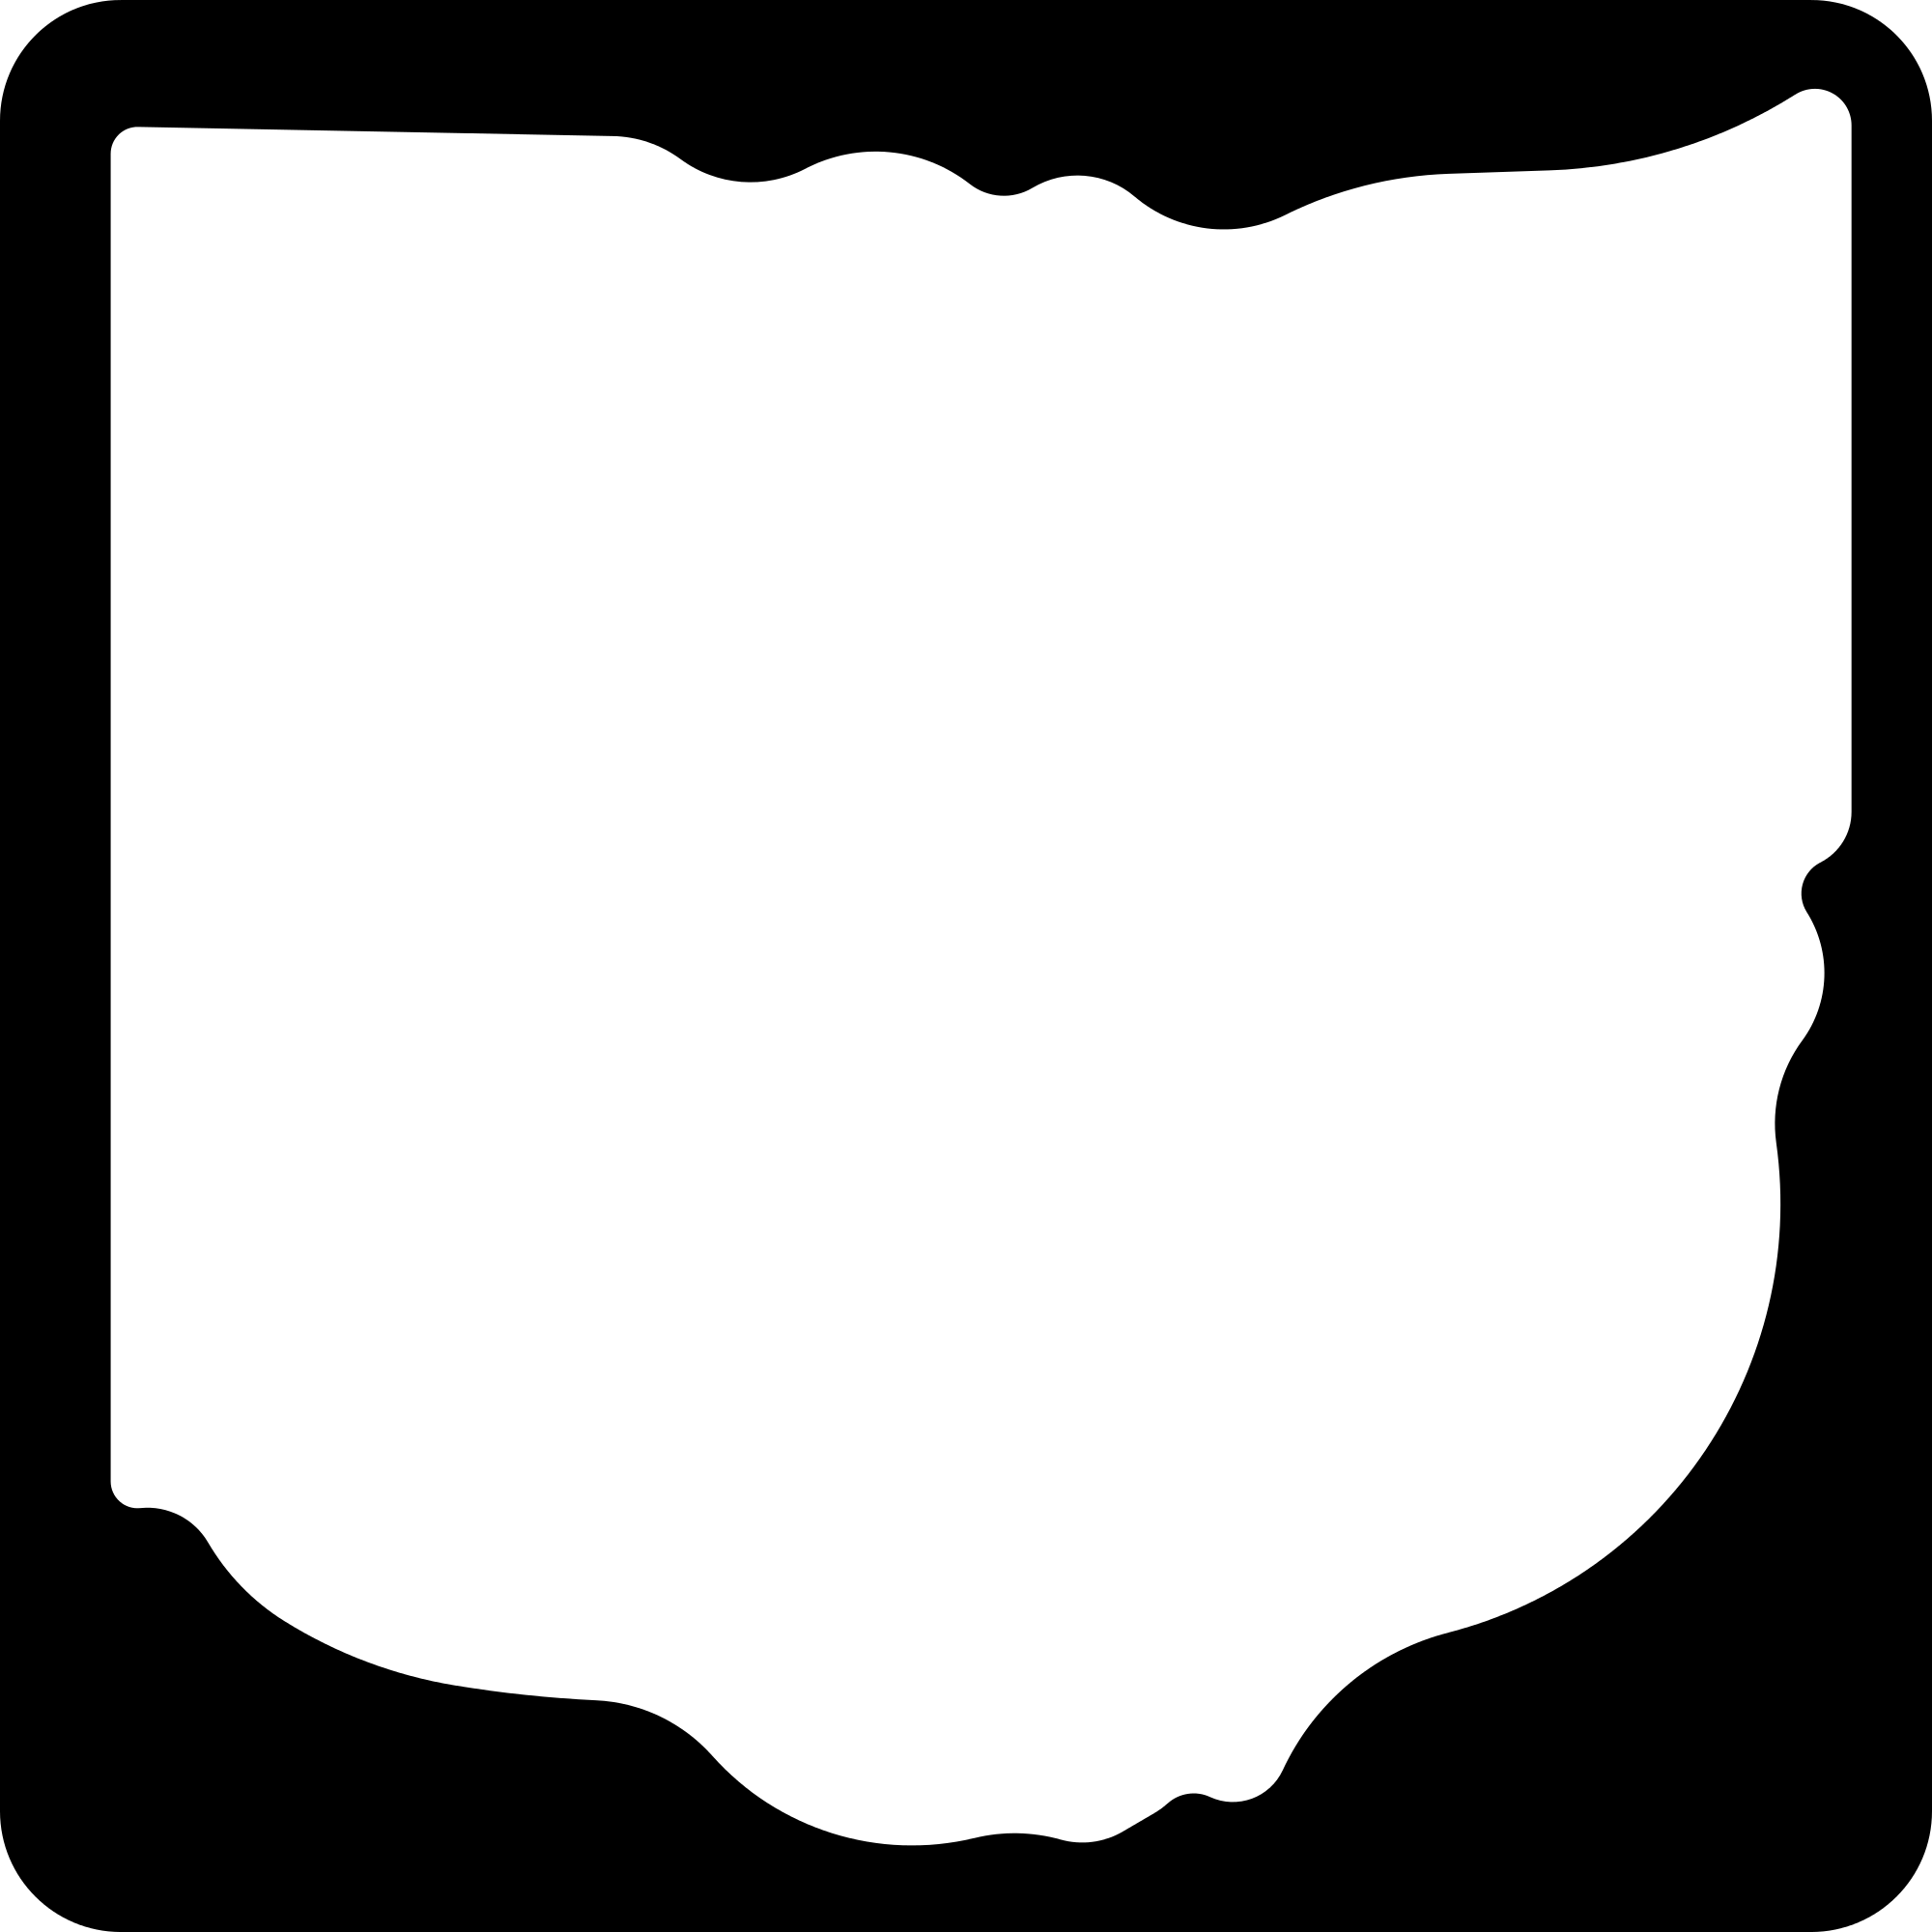 Ohio svg #13, Download drawings